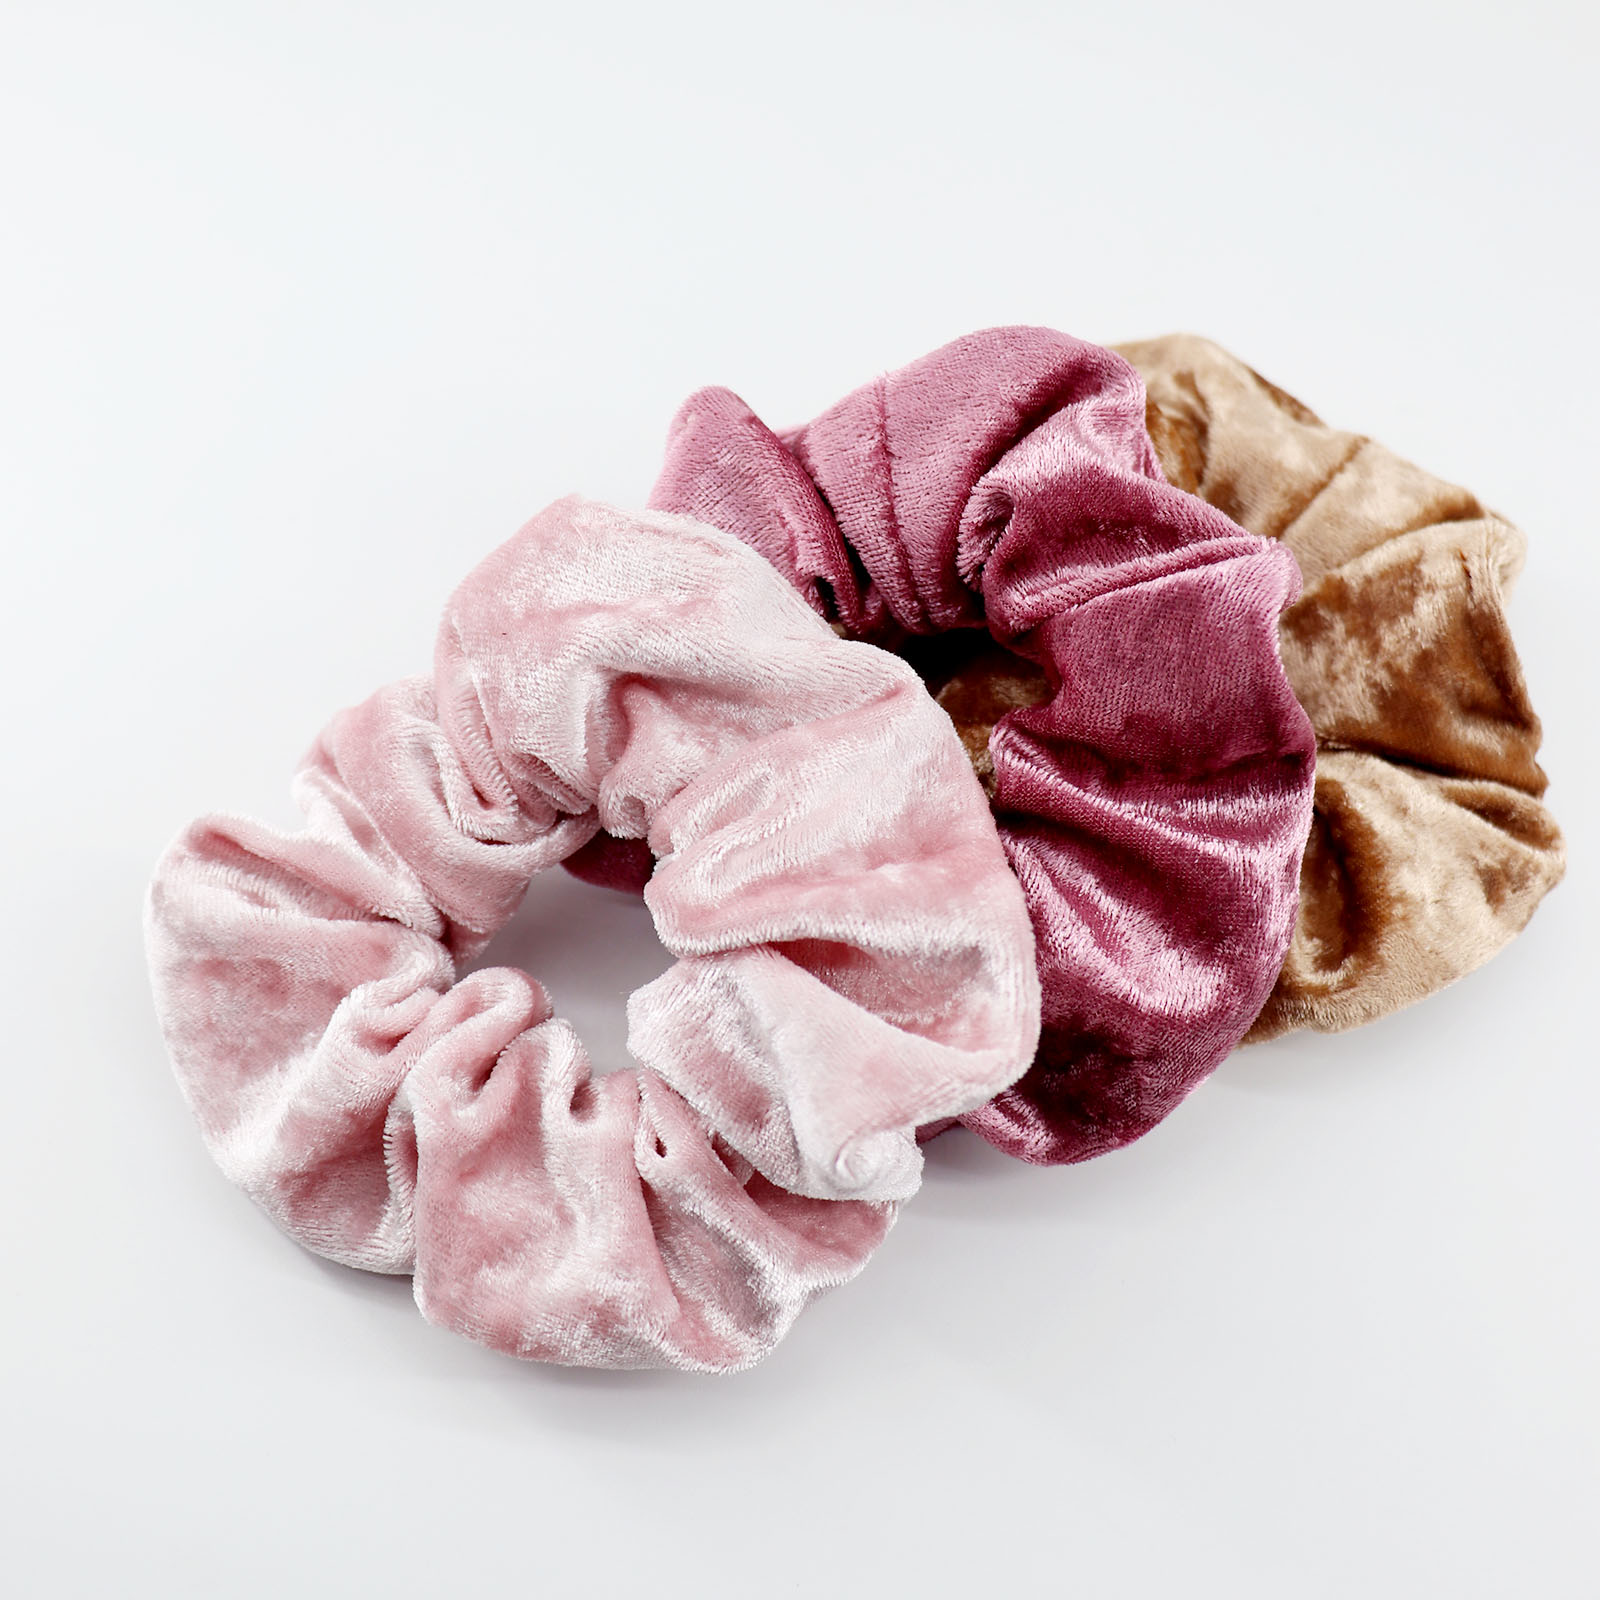 Soft Crushed Velvet Scrunchies Hair Tie Girl Hair Rope Scrunchy Hairband Wrist Accessories For Women Elastic Ponnytail Holder